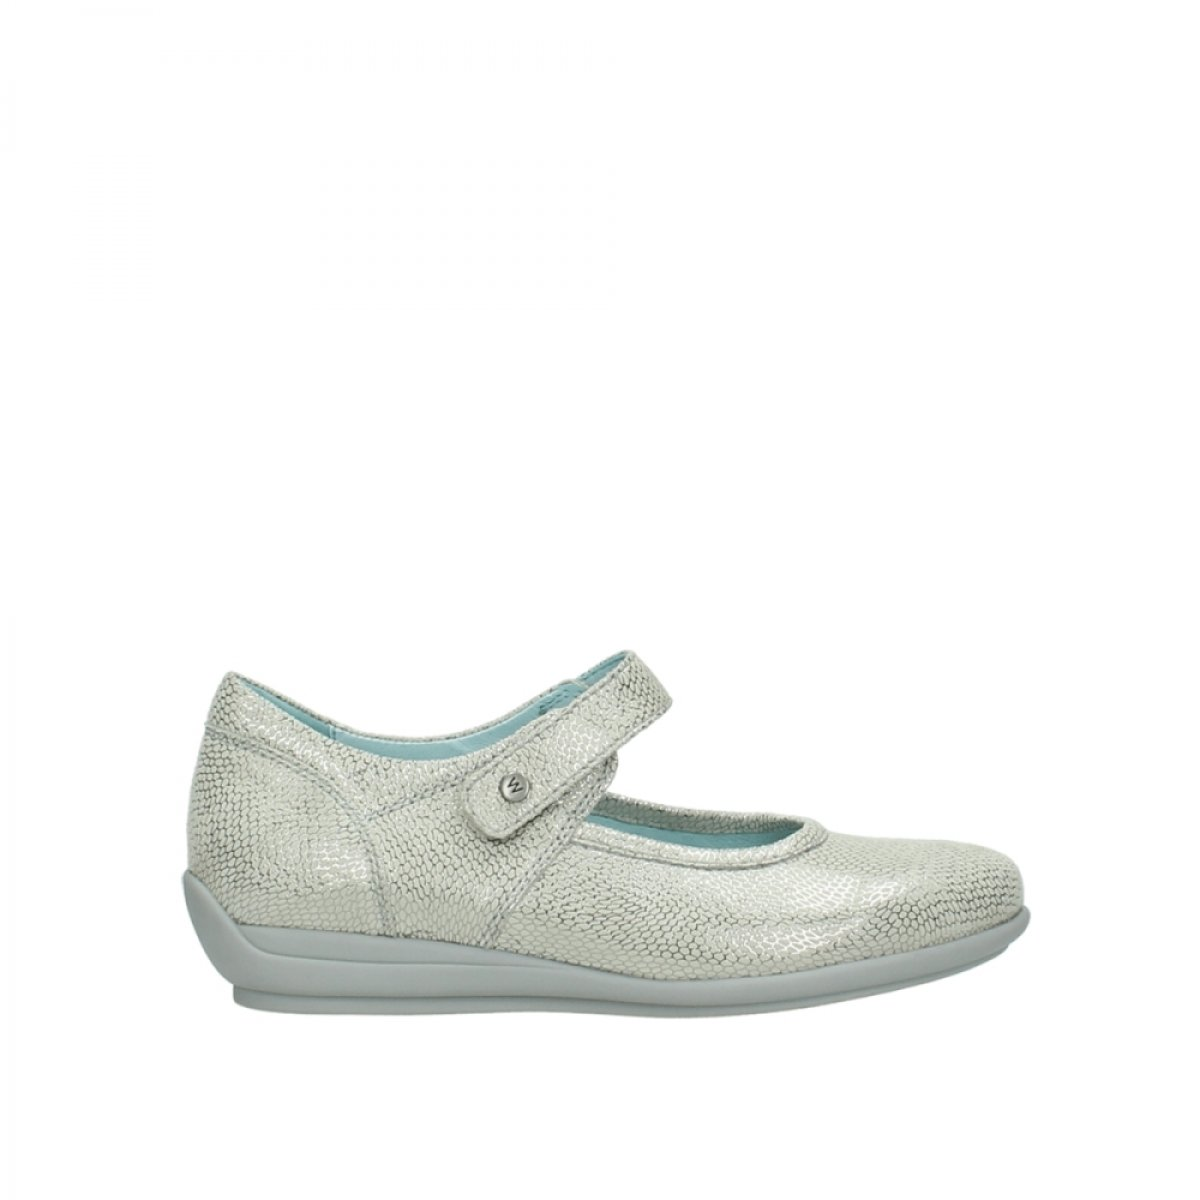 Wolky Comfort Mary Janes Noble B01MS7KK5N 36 EU|20120 Off White/Silver Printed Leather